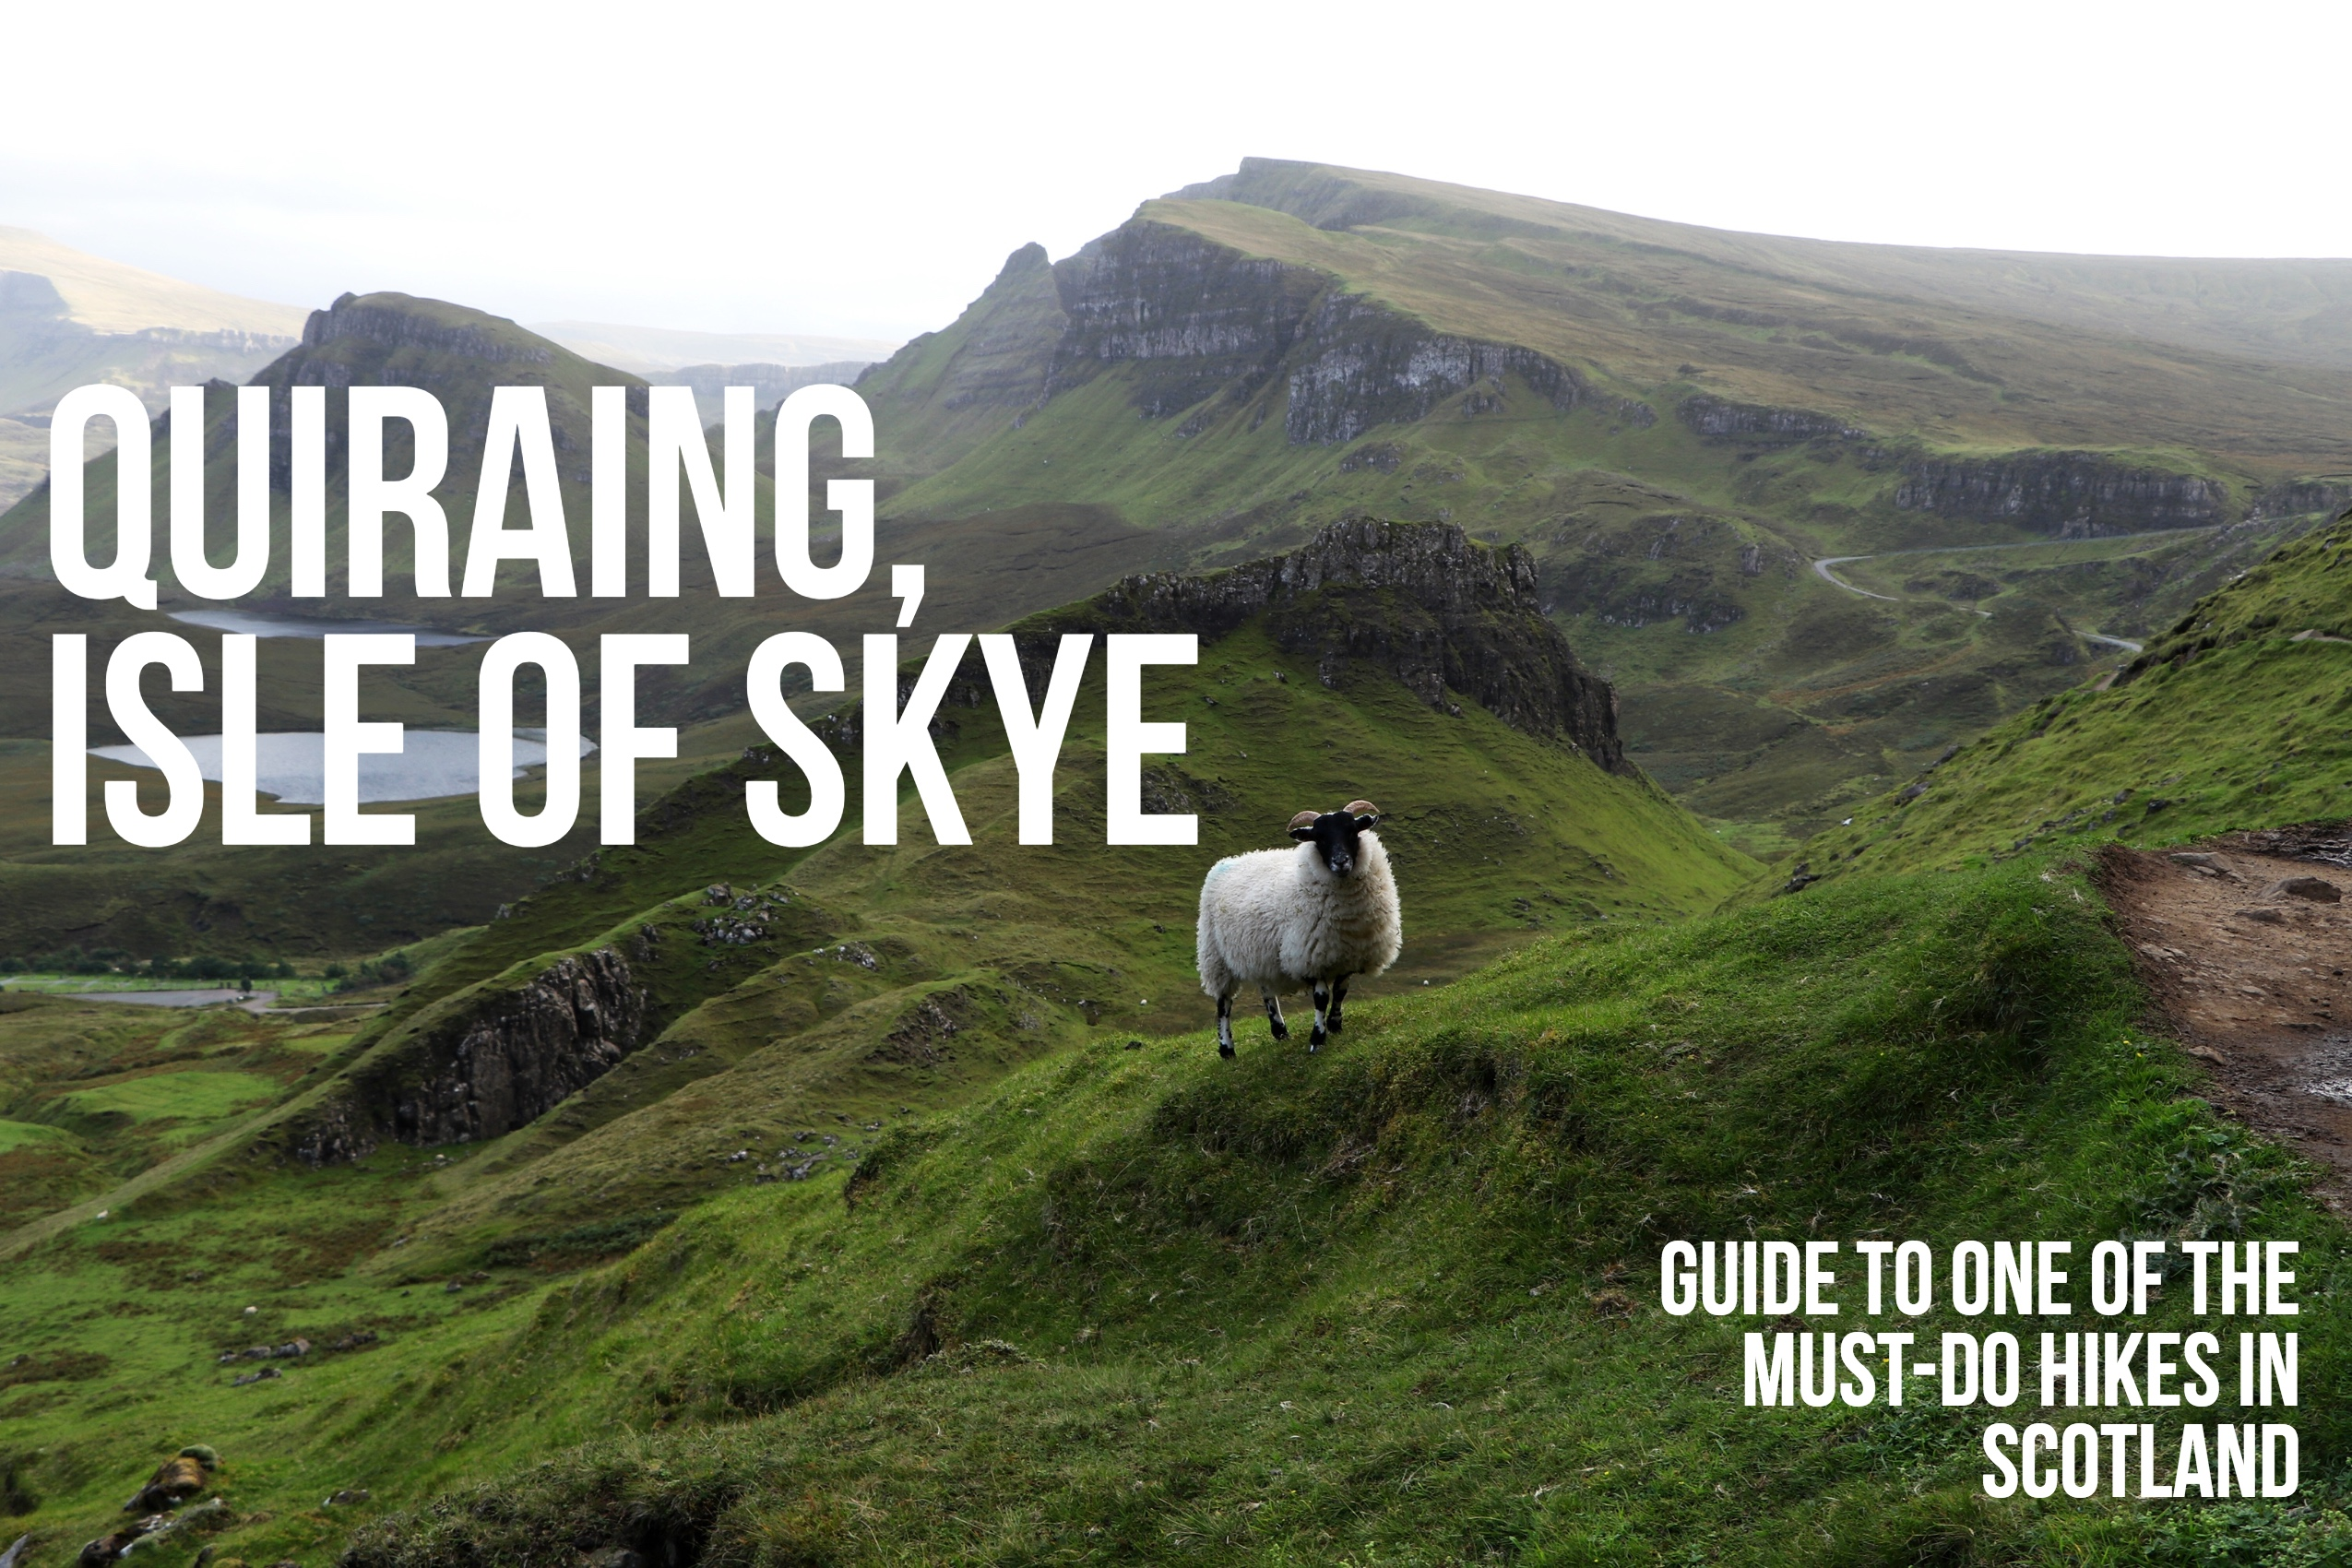 Quiraing, Isle of Skye guide to one of the best hikes in Scotland